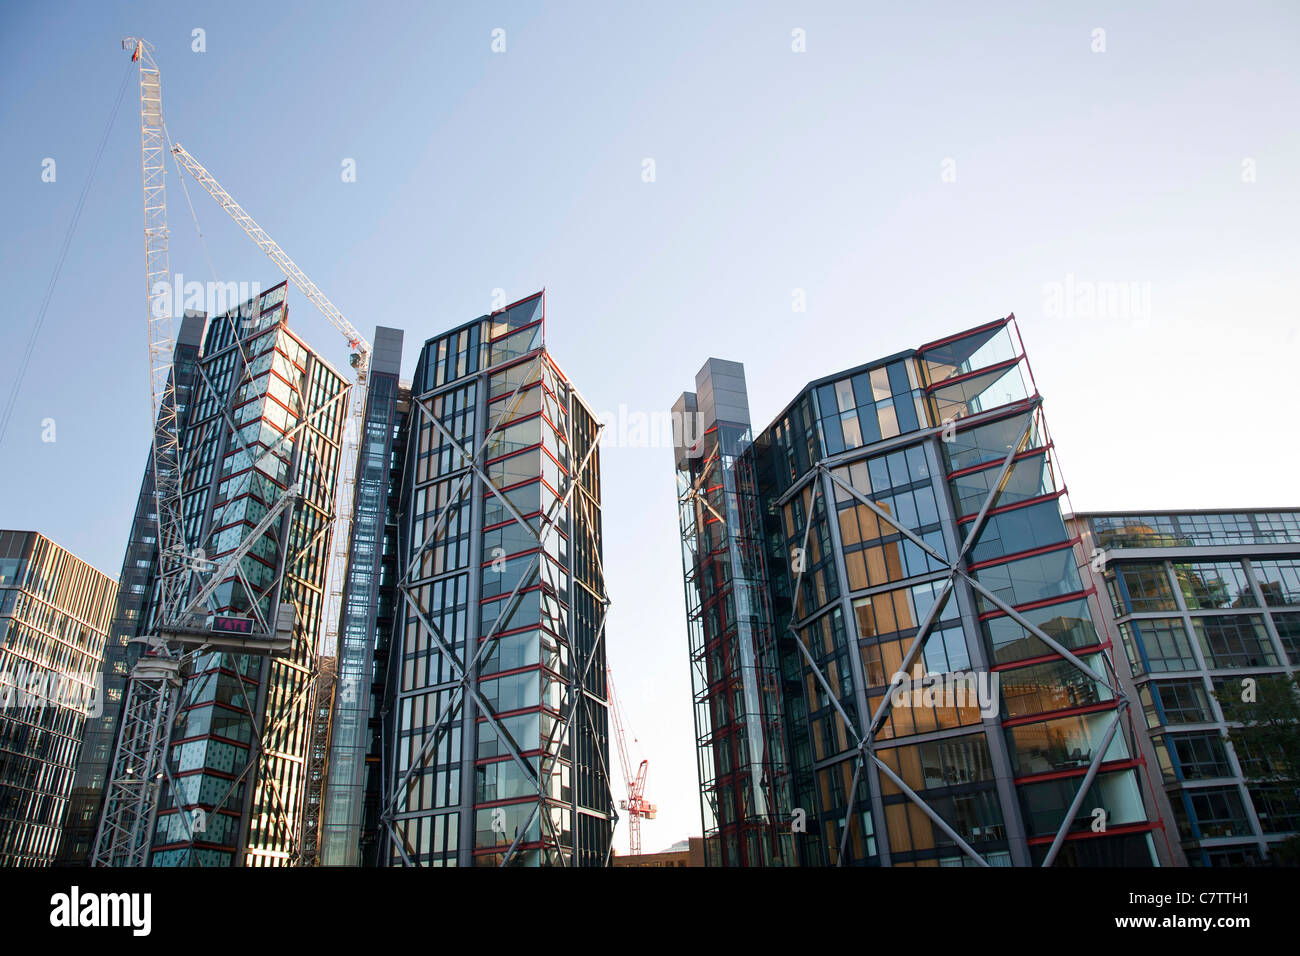 Modern skyscrapers under construction behind Tate Modern London. - Stock Image